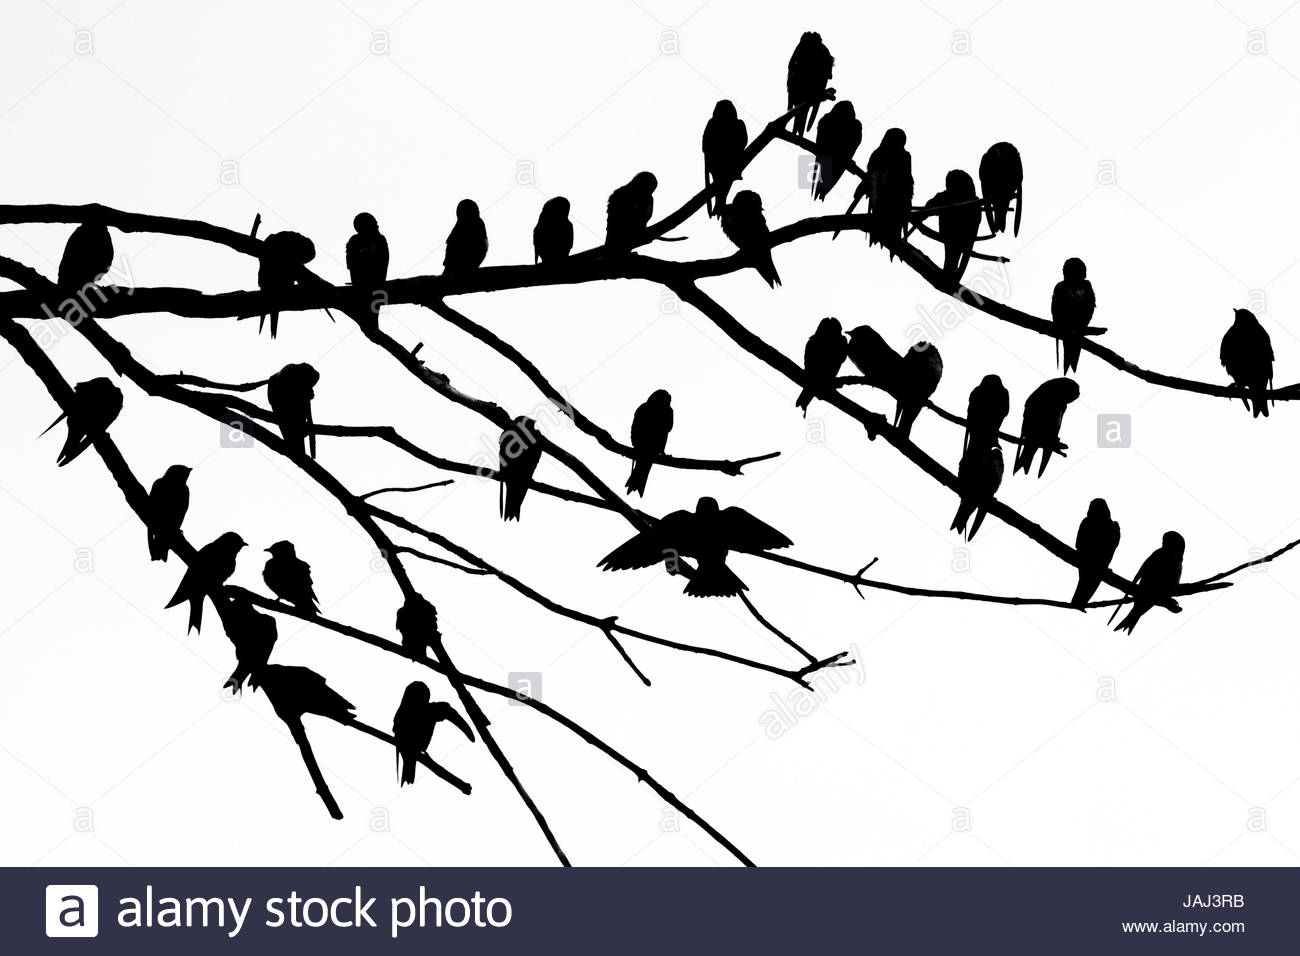 Silhouette of birds perched on the branches of a dead tree above the Occoquan River. - Stock Image